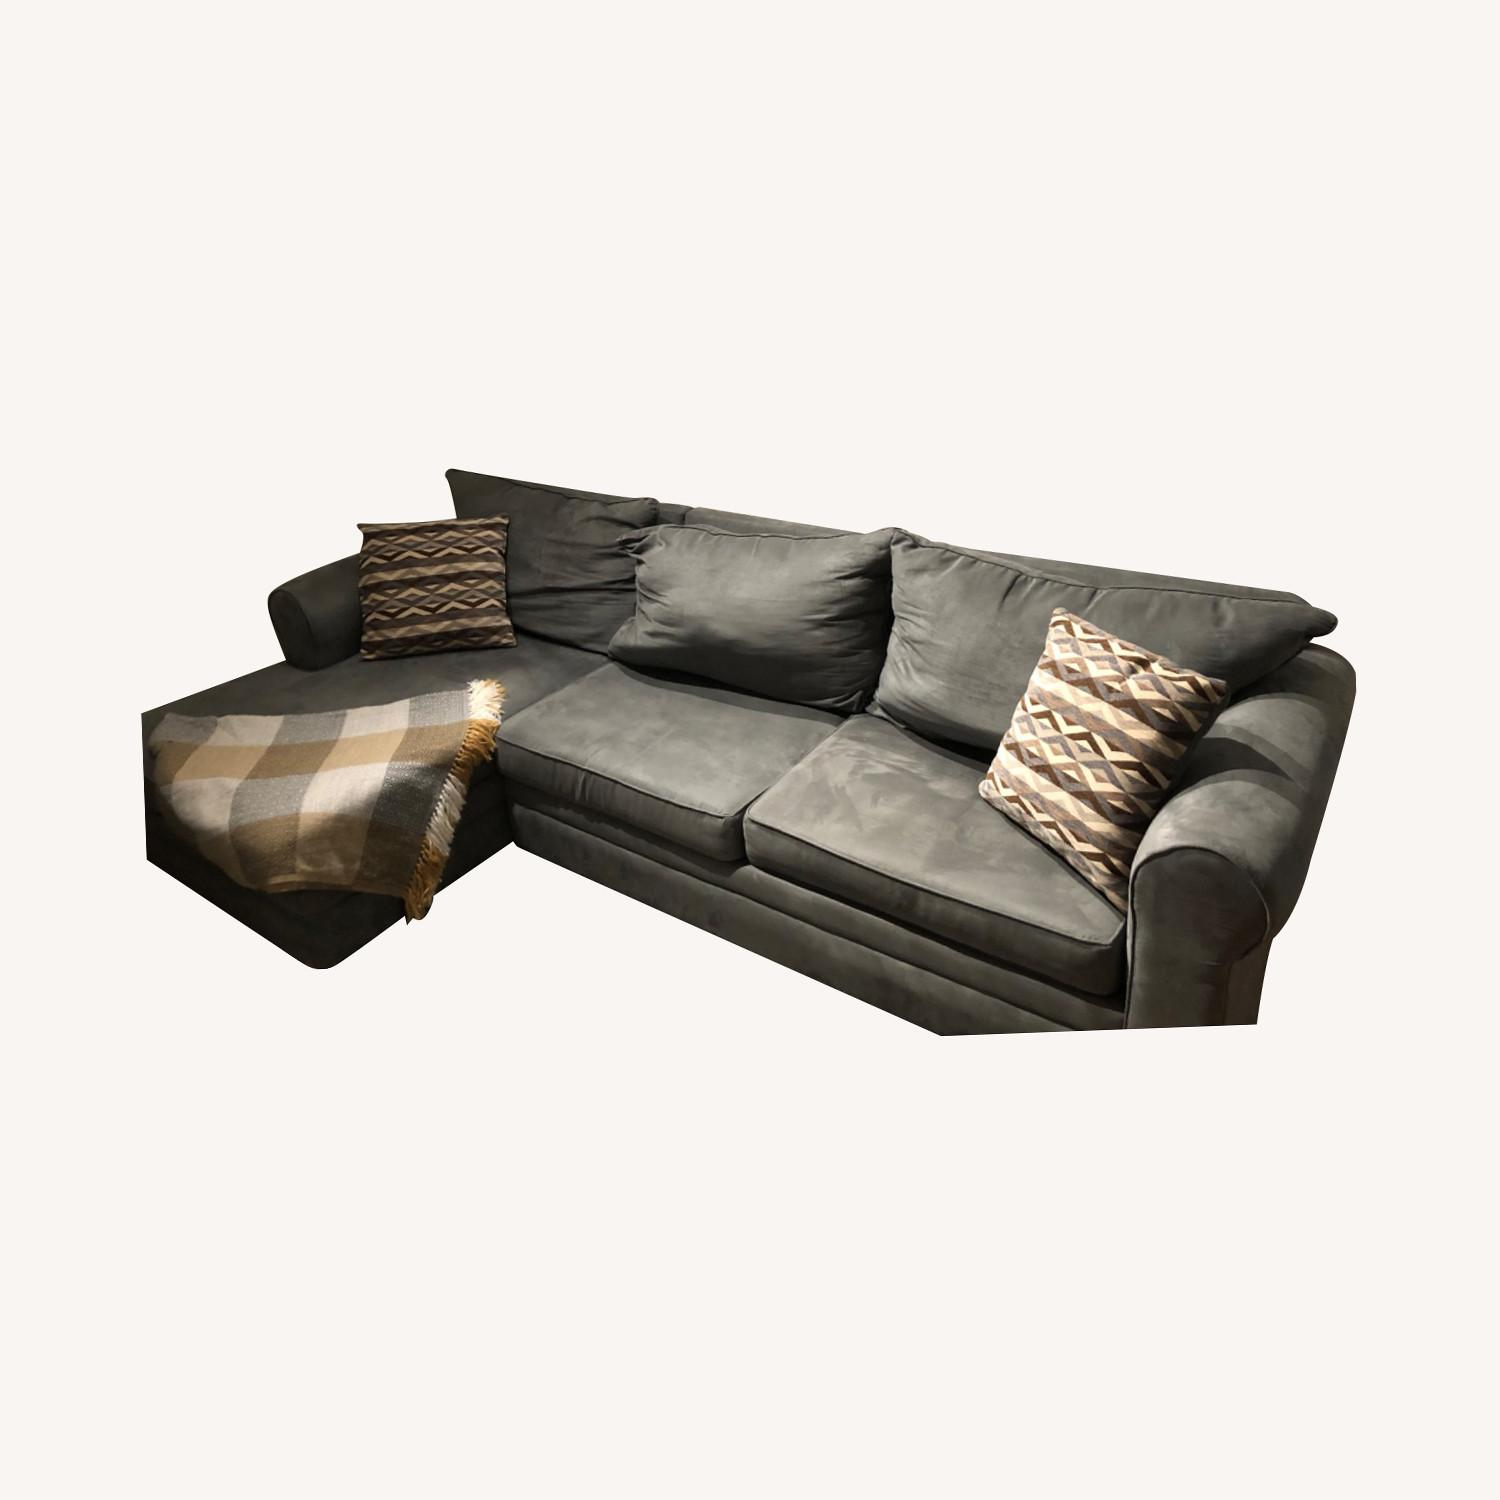 Bob's Discount Ash Grey Sectional Couch - image-0